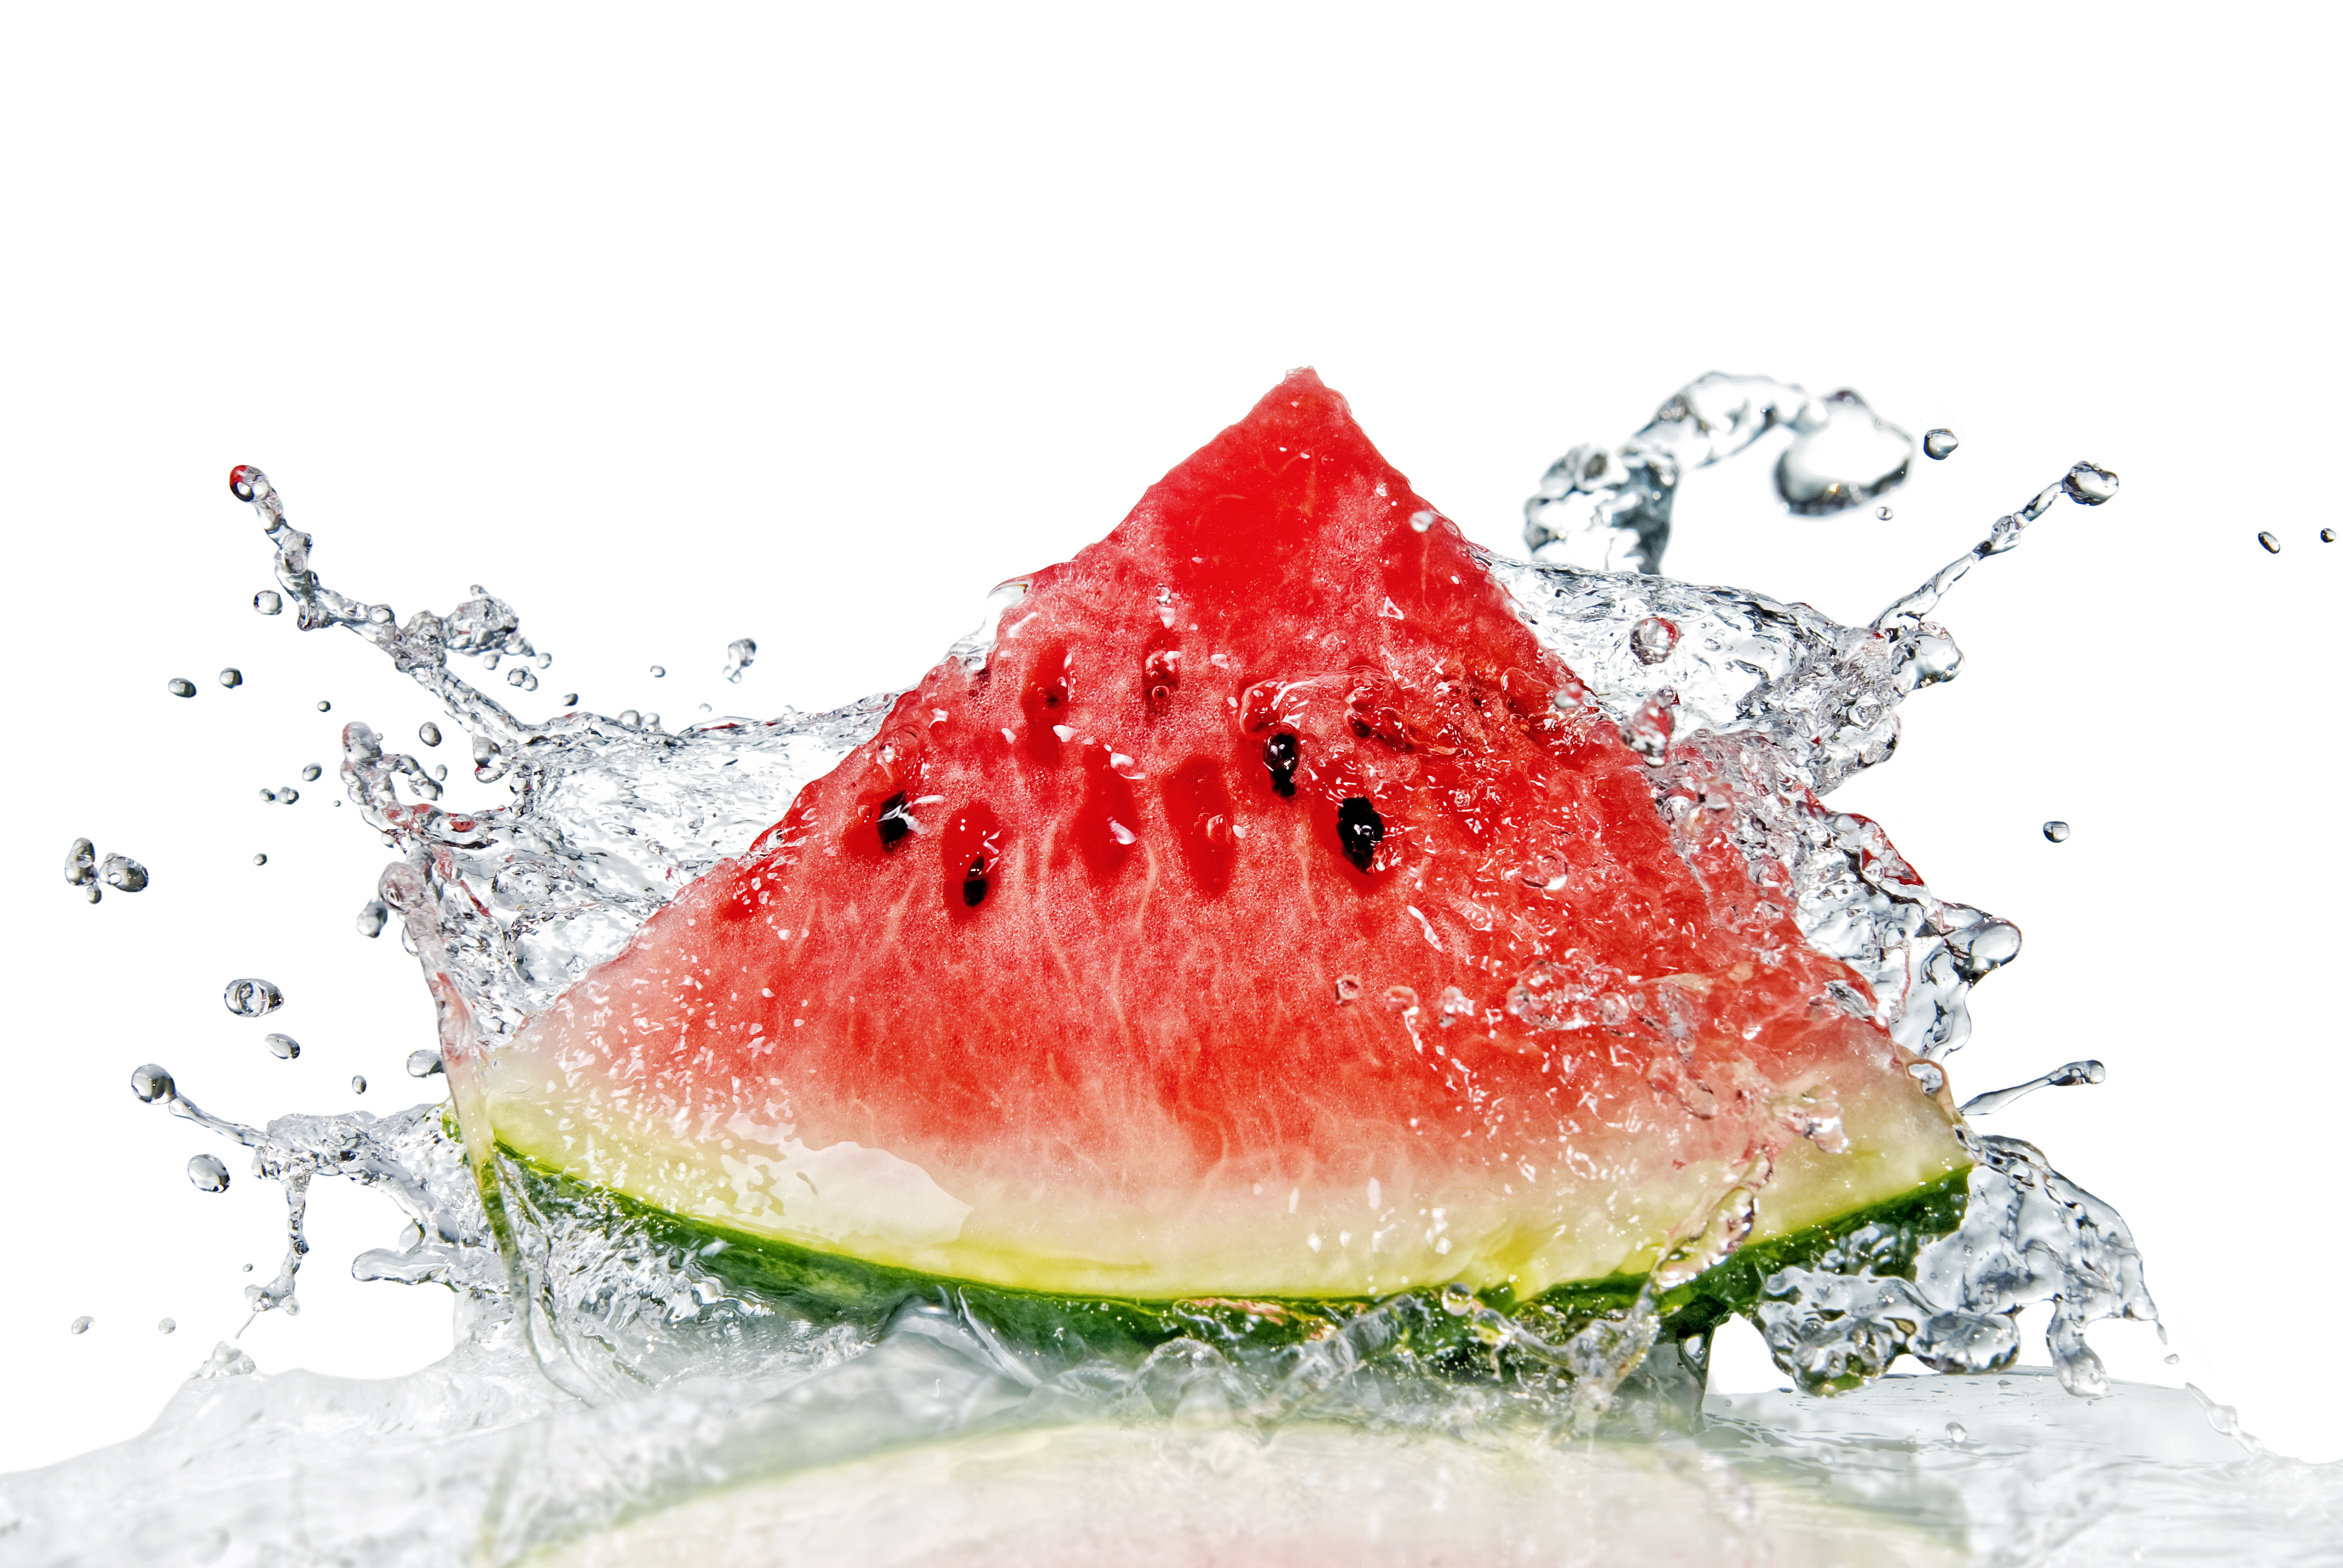 8 Truths About Watermelon That Will Make You Smile Big Time